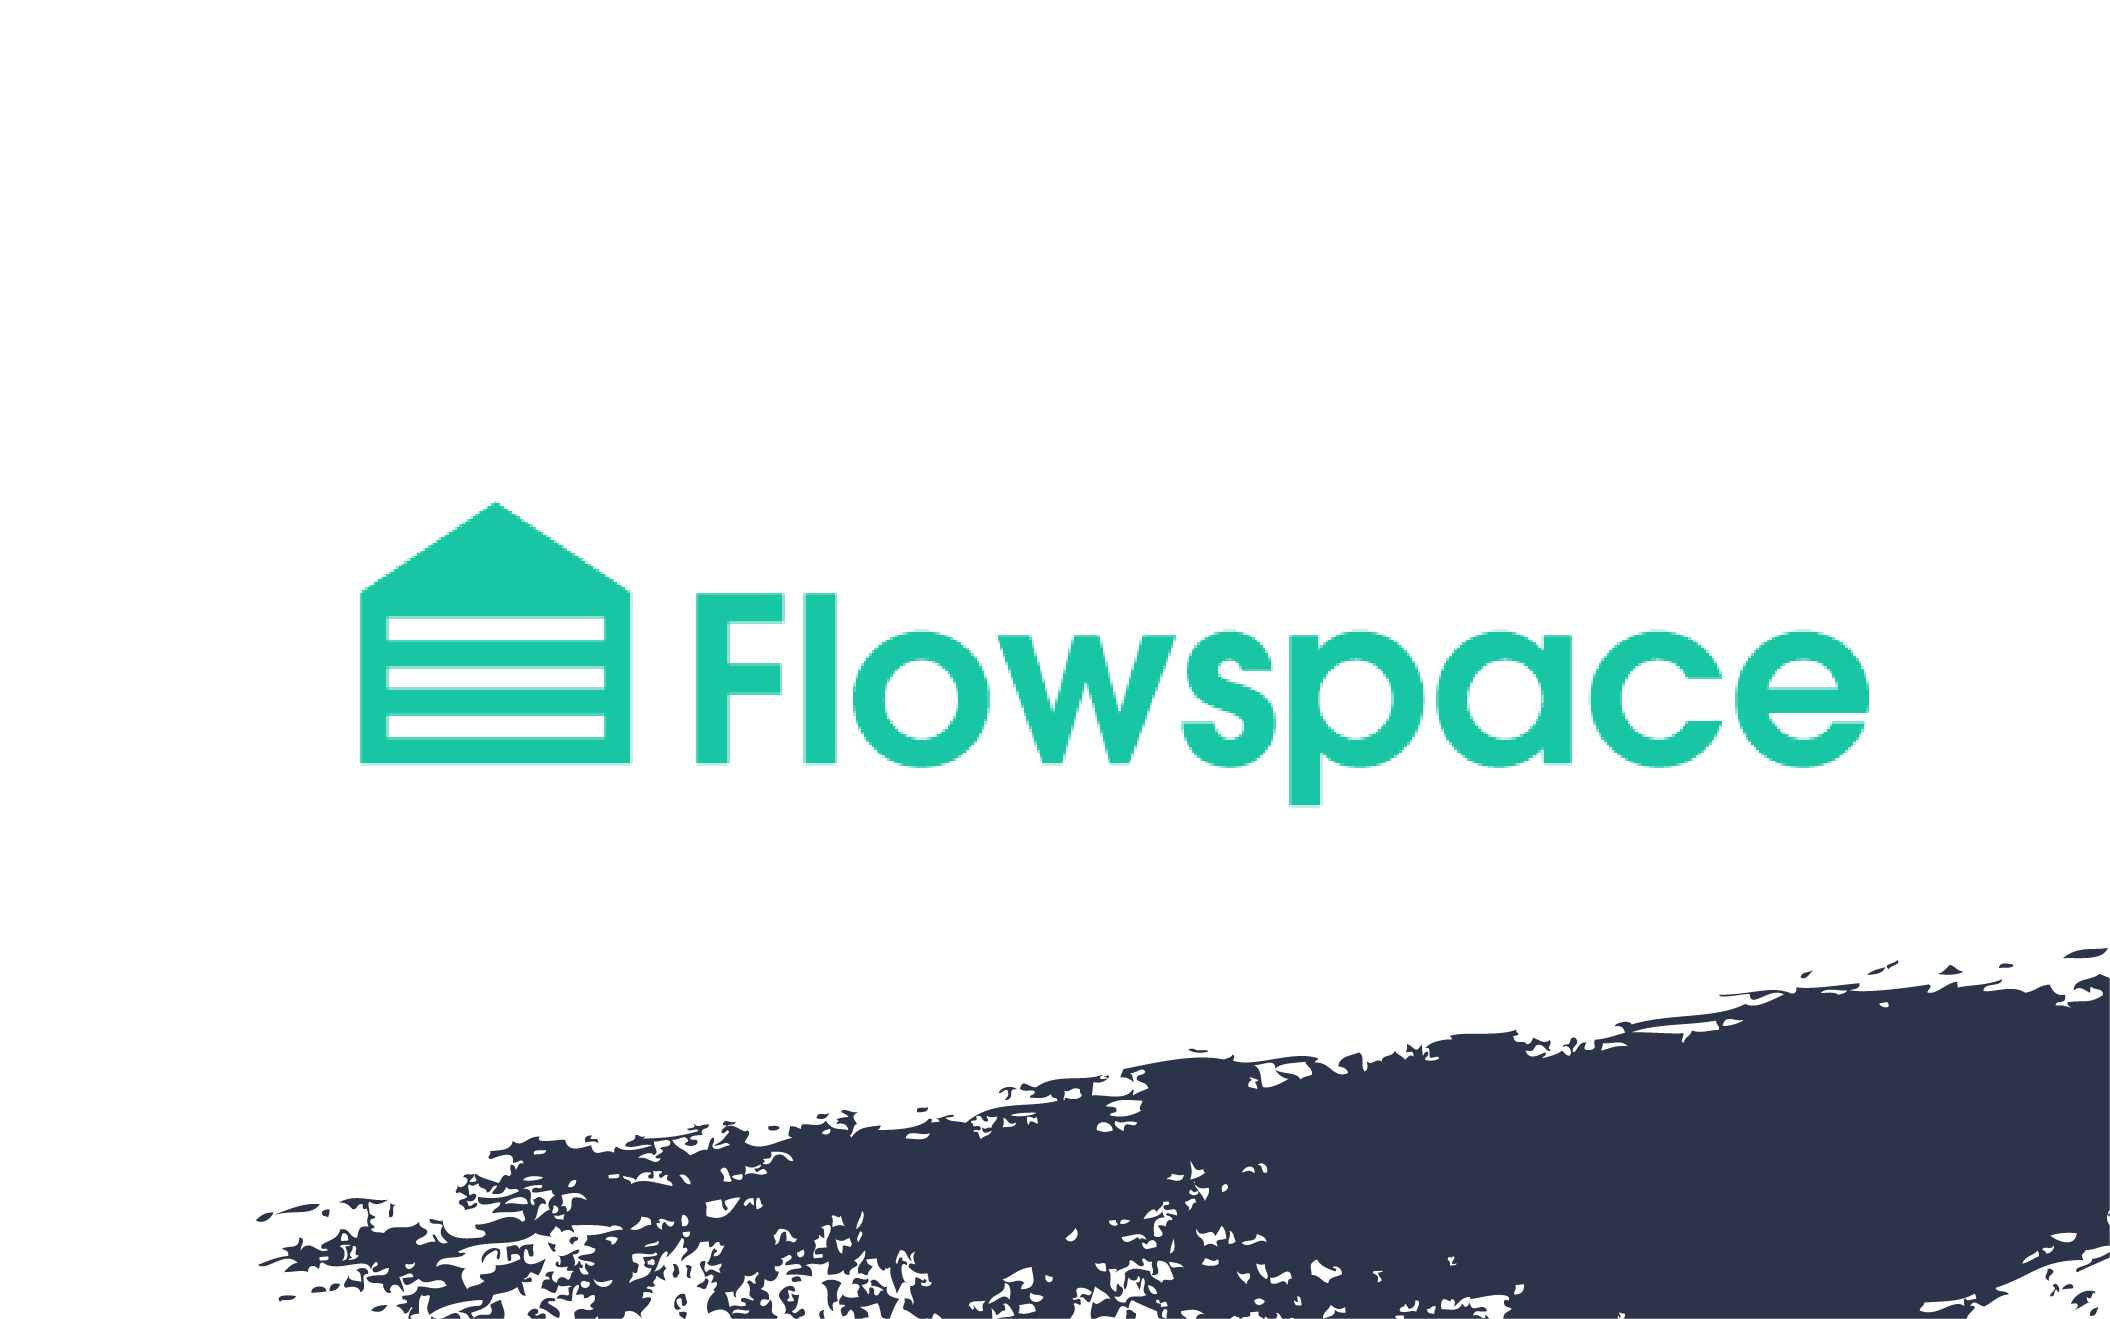 On-demand logistics and fulfillment startup Flowspace raises $31M